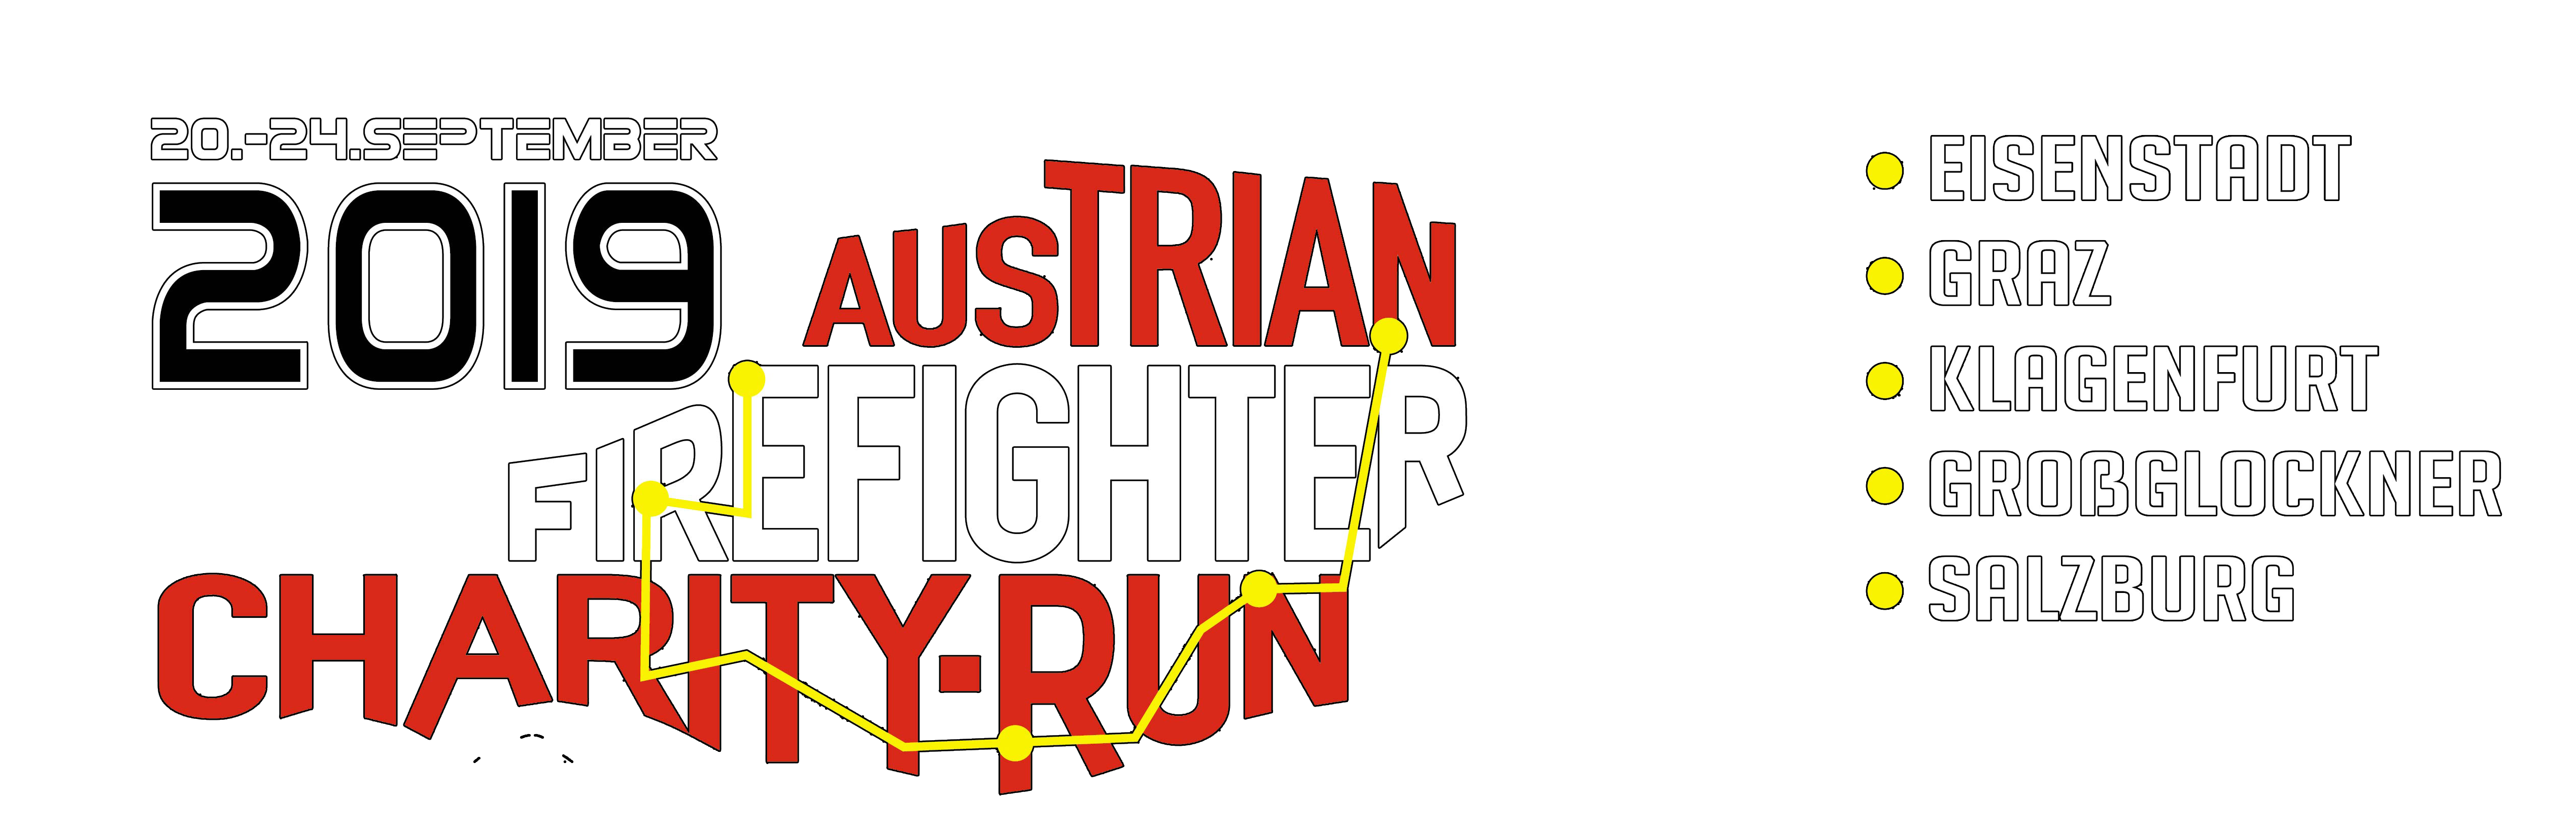 AUSTRIAN - FIREFIGHTERRUN 2017